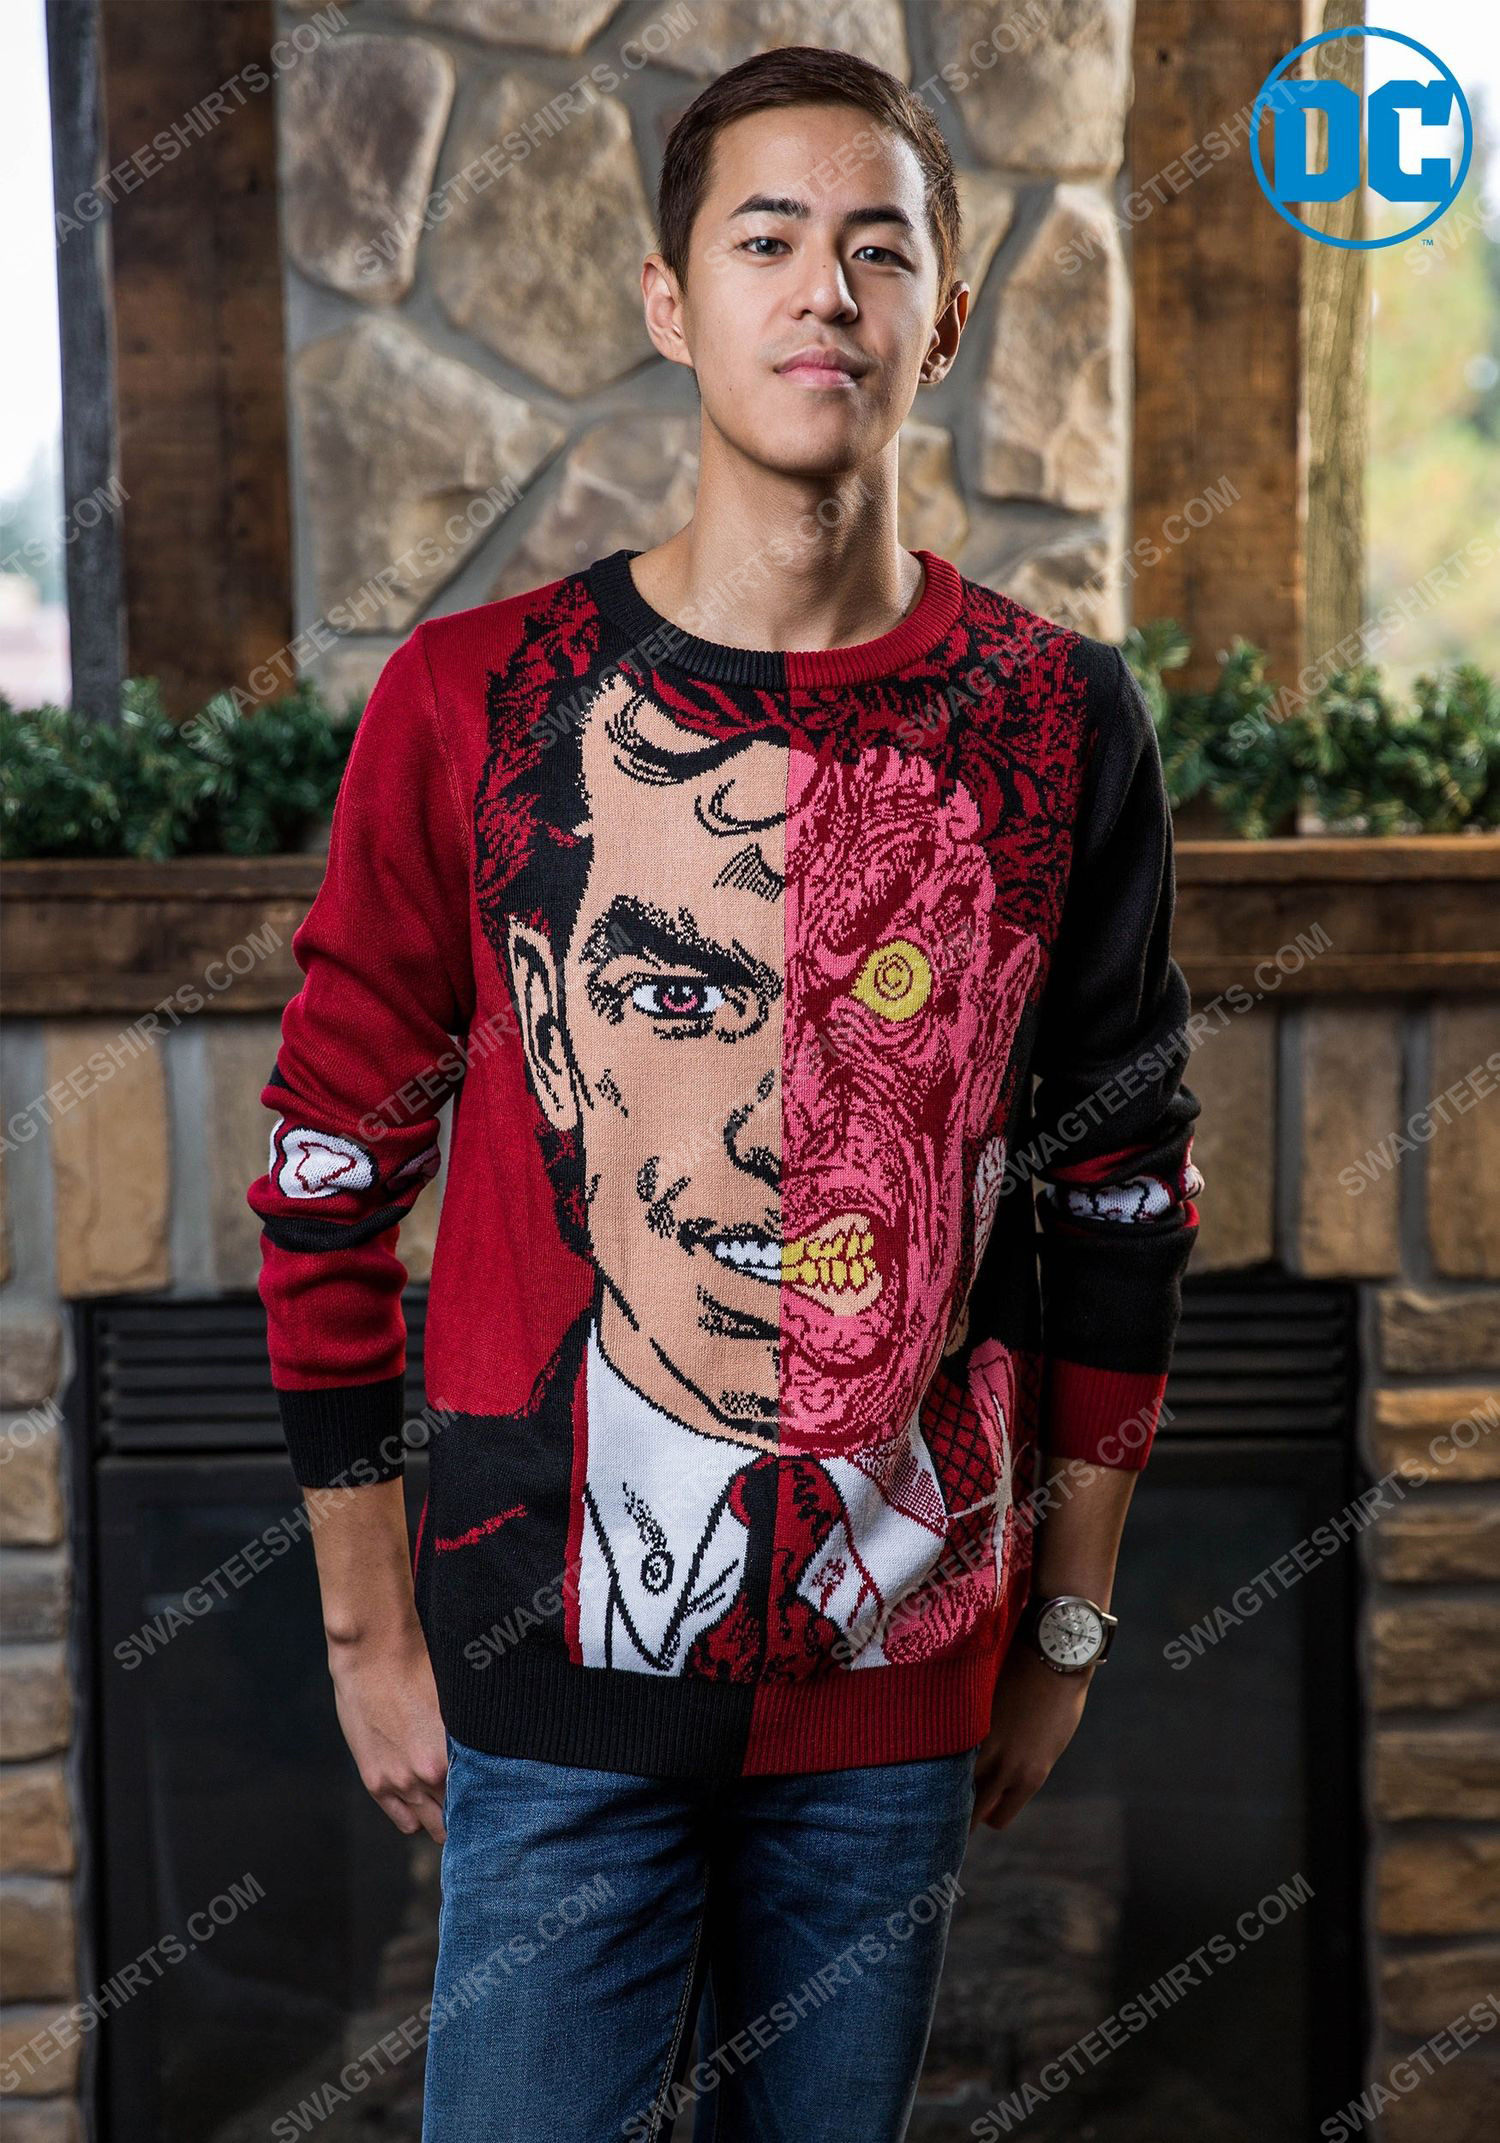 Christmas holiday batman two-face full print ugly christmas sweater 2